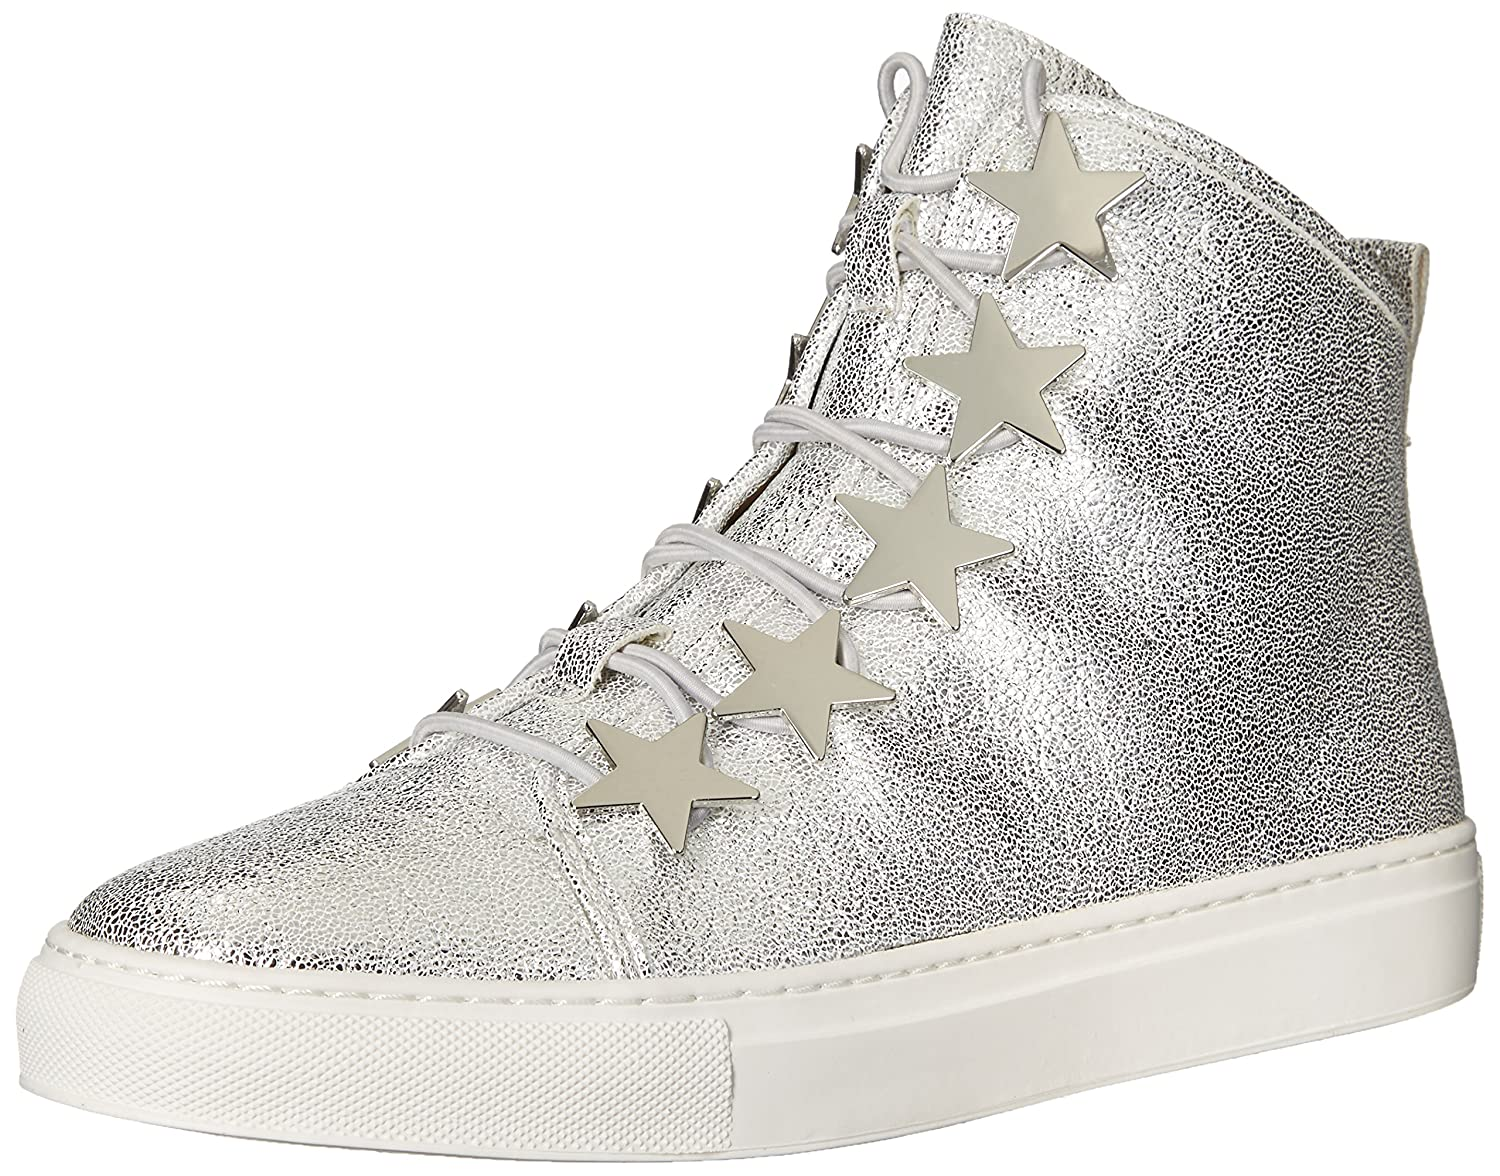 Katy Perry Women's The Astrea Sneaker, White, 8.5 Medium US B06XG4VRBS 5 B(M) US|Silver